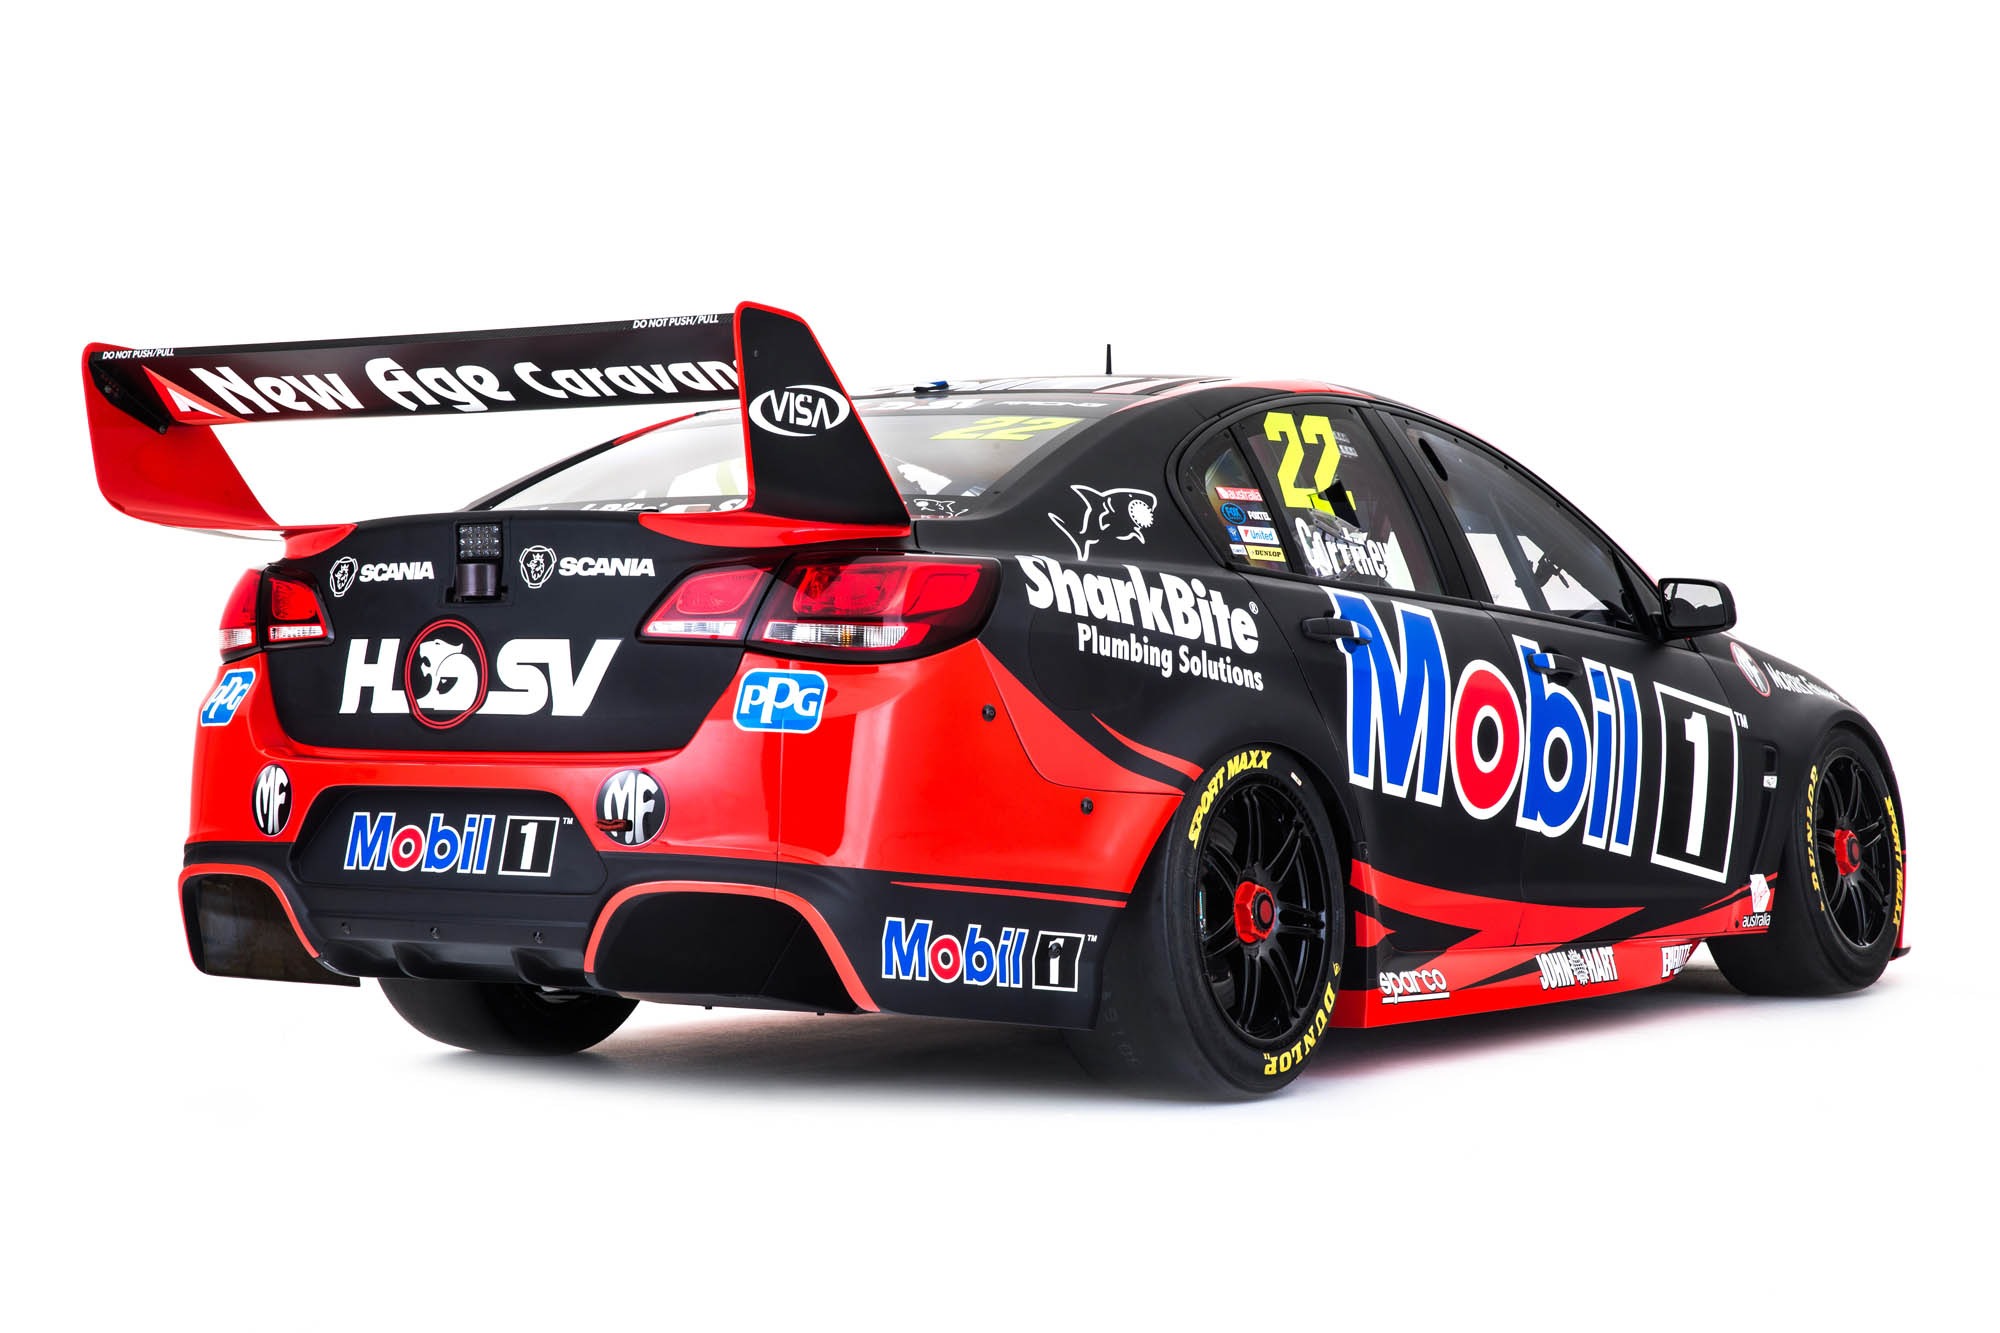 Walkinshaw Racing Livery Launch 2017 Motorsport Photography Lucas Wroe Melbourne Photographer Videographer